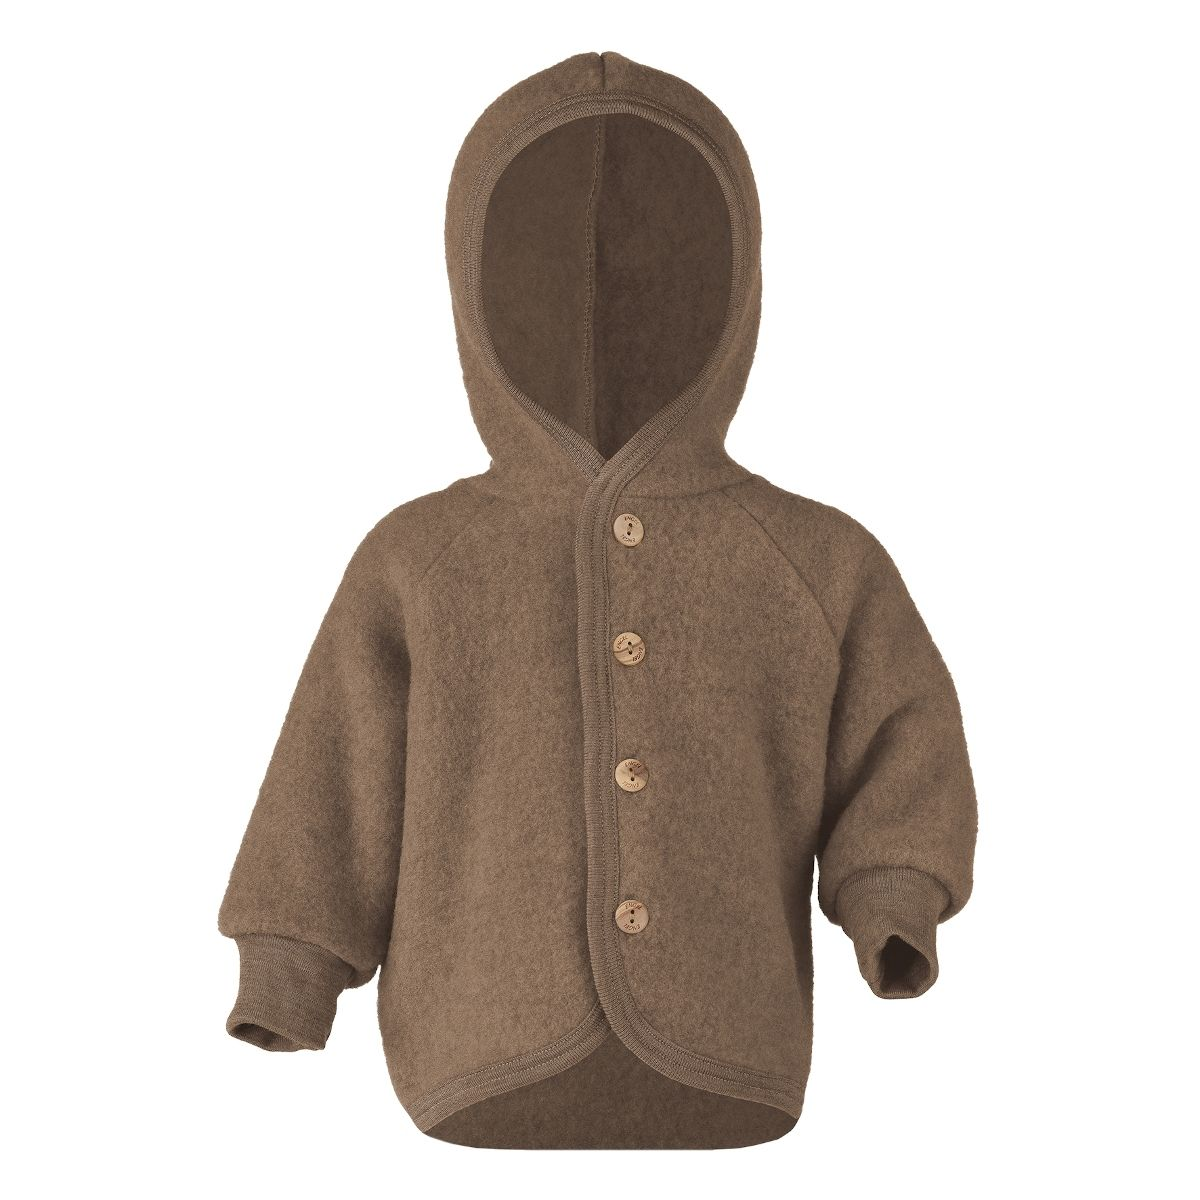 ENGEL Hooded jacket with wooden buttons brown